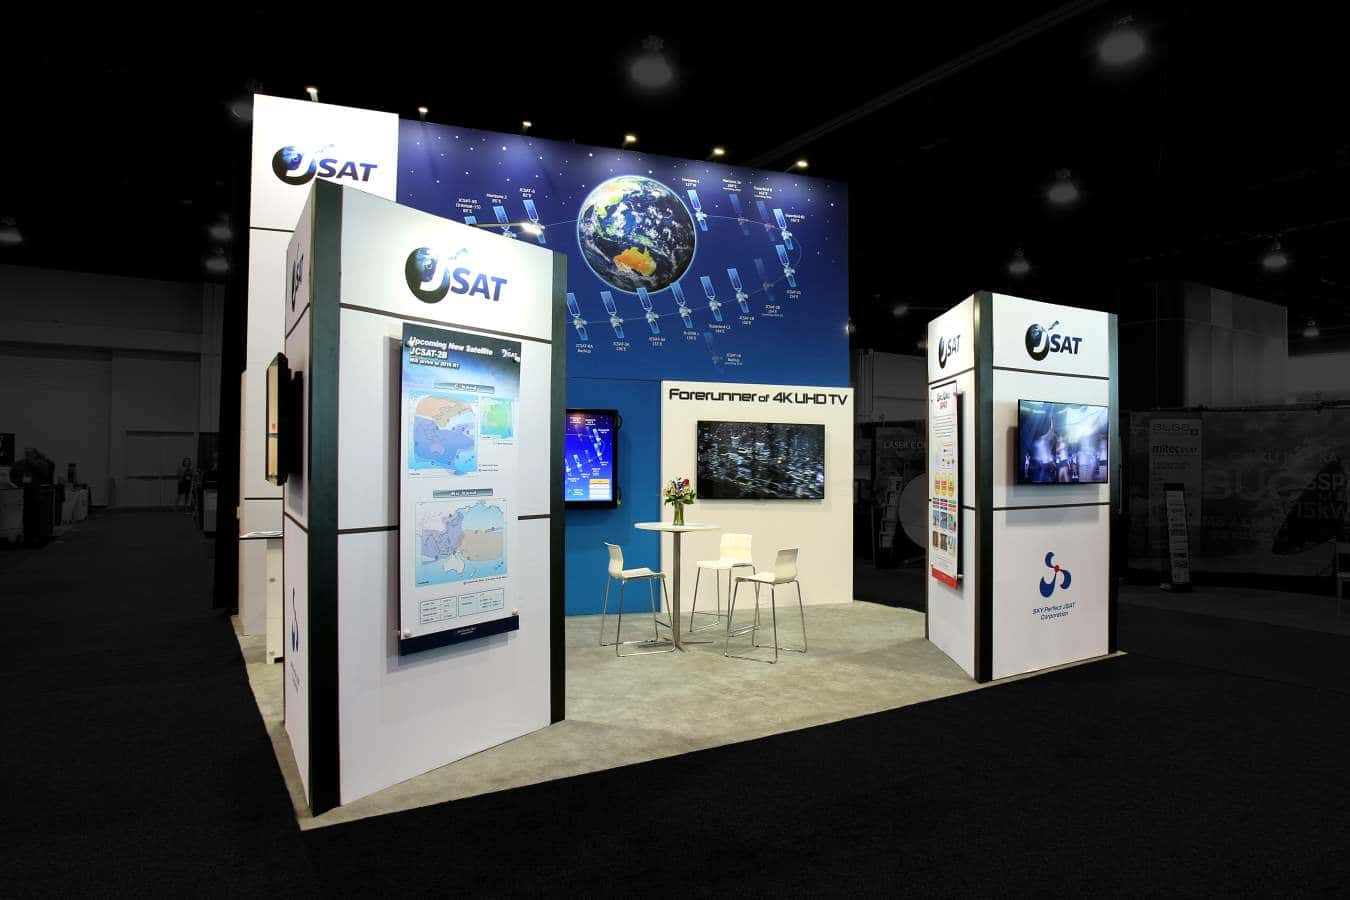 20x20 trade show rental booth @ Satellite Expo